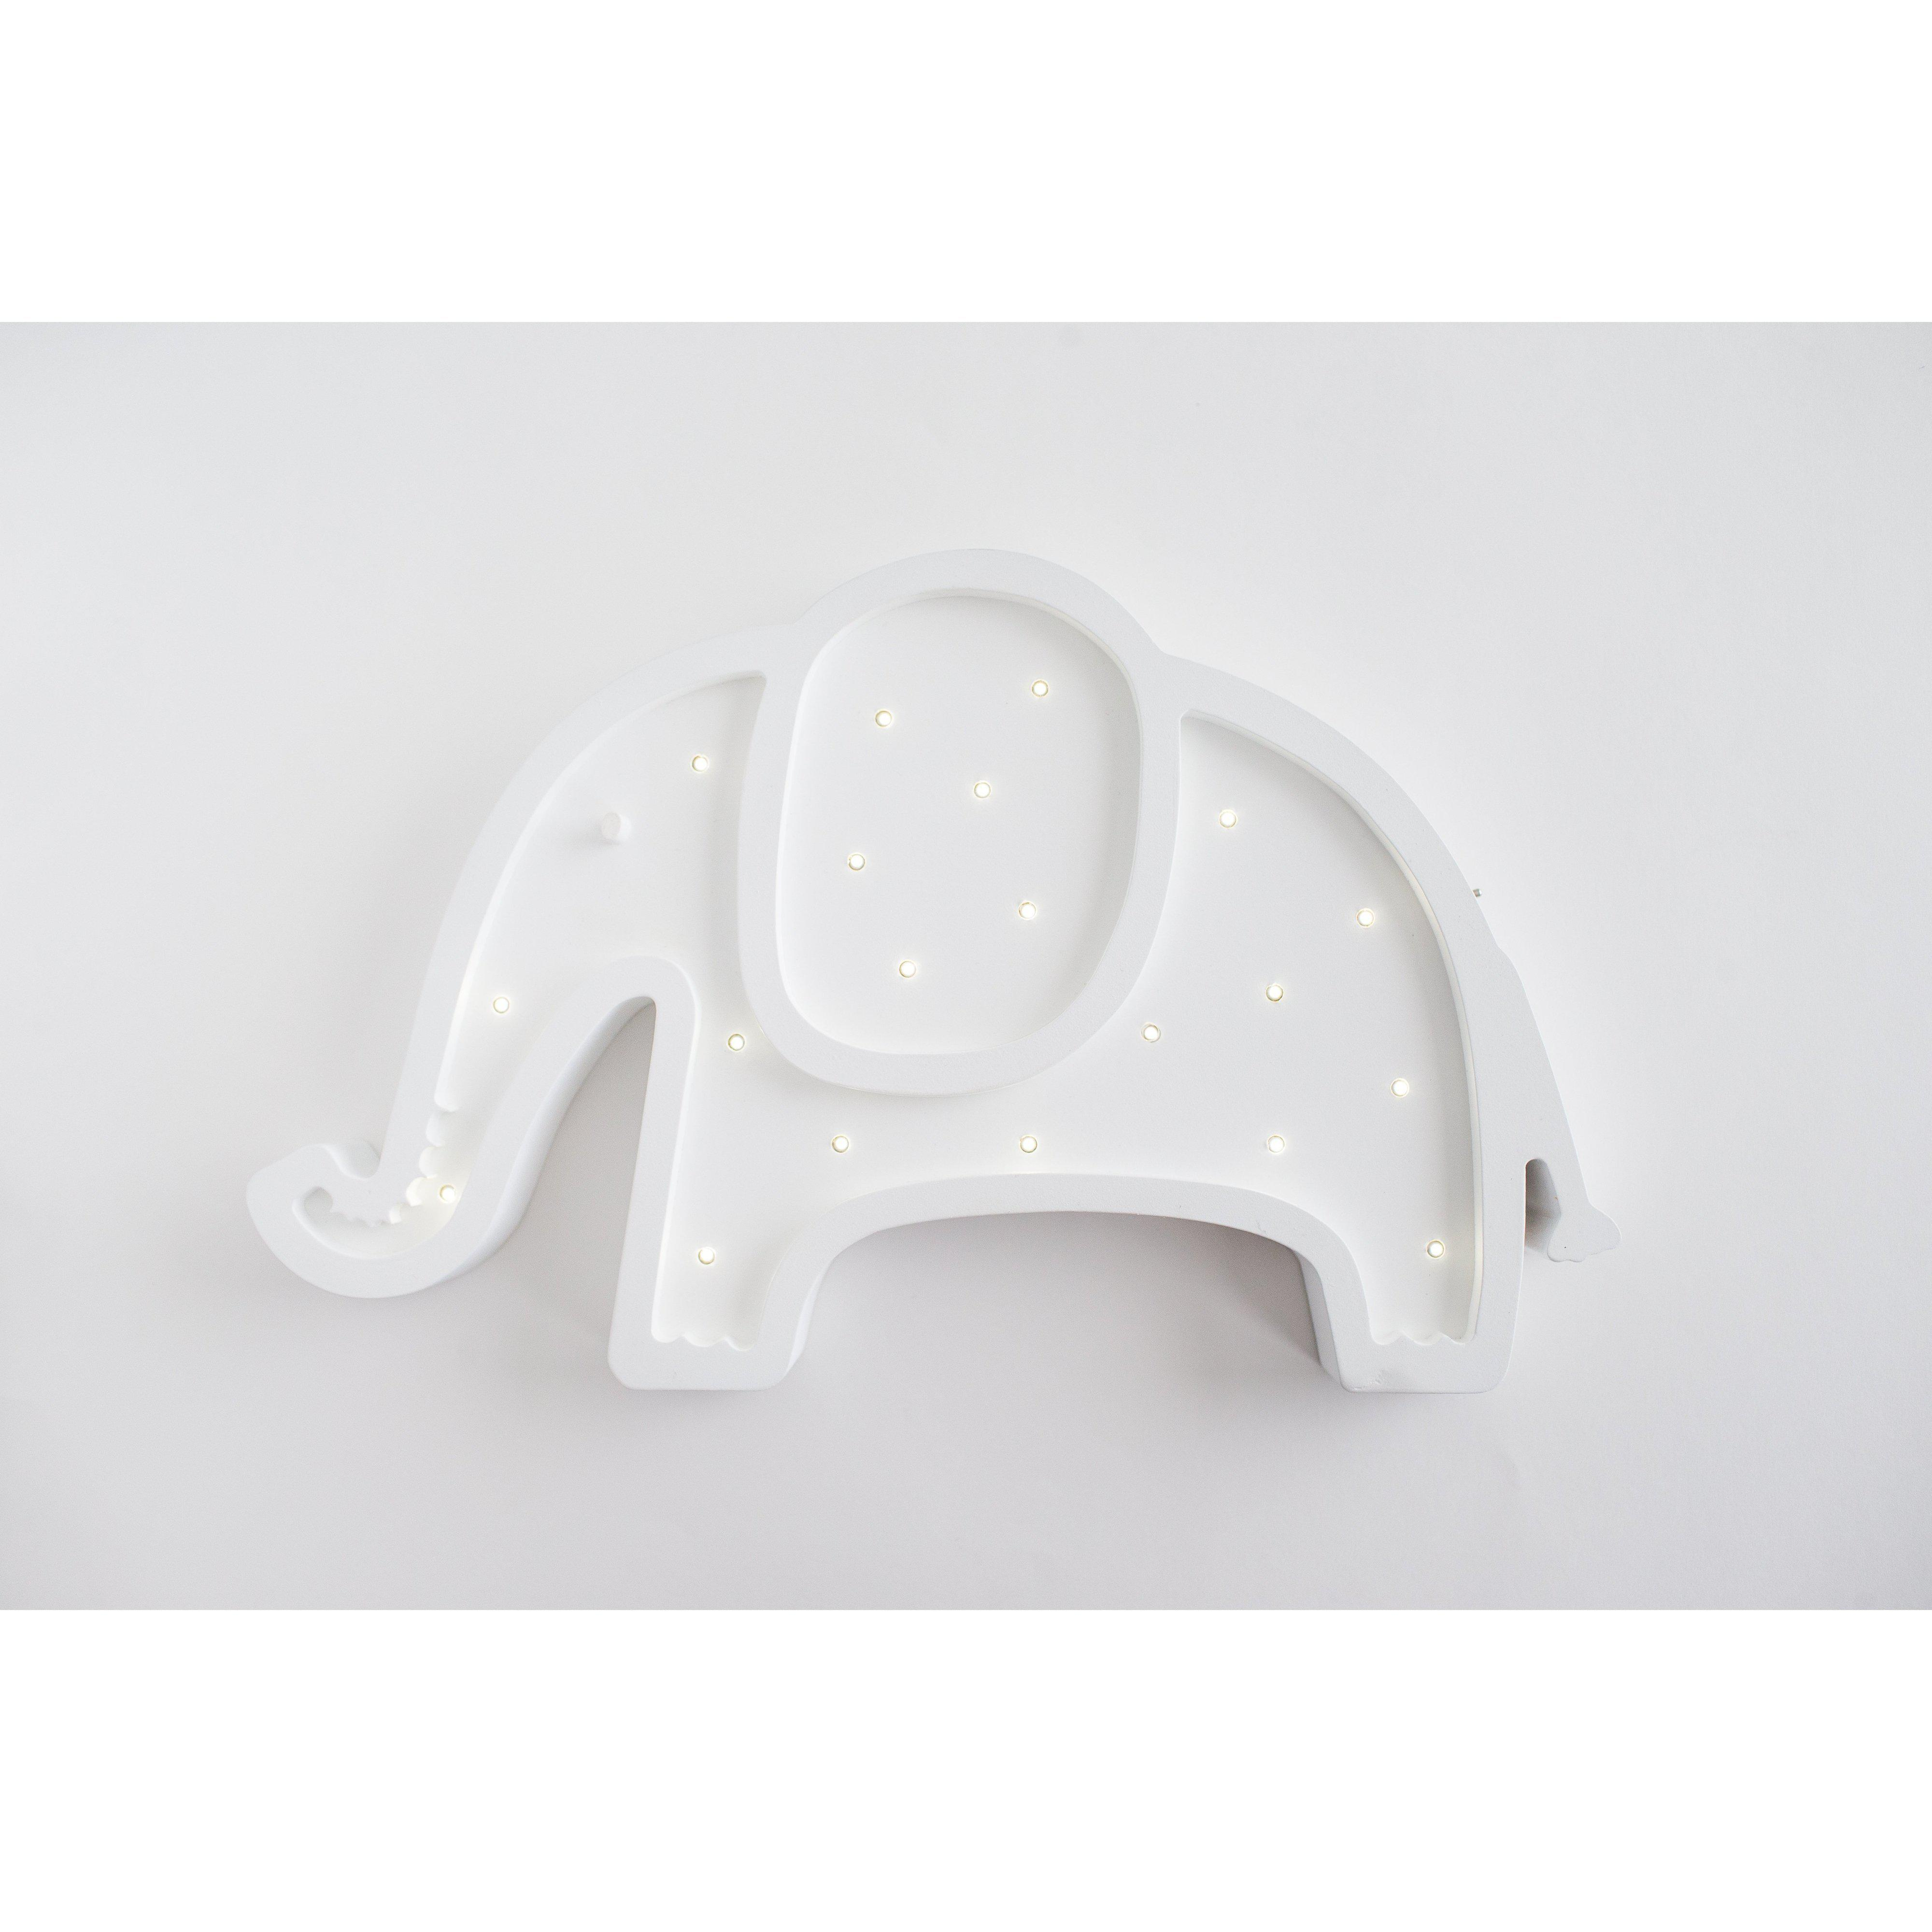 Elephant Marquee Natural White Light-Marquee Art-Pulp Function